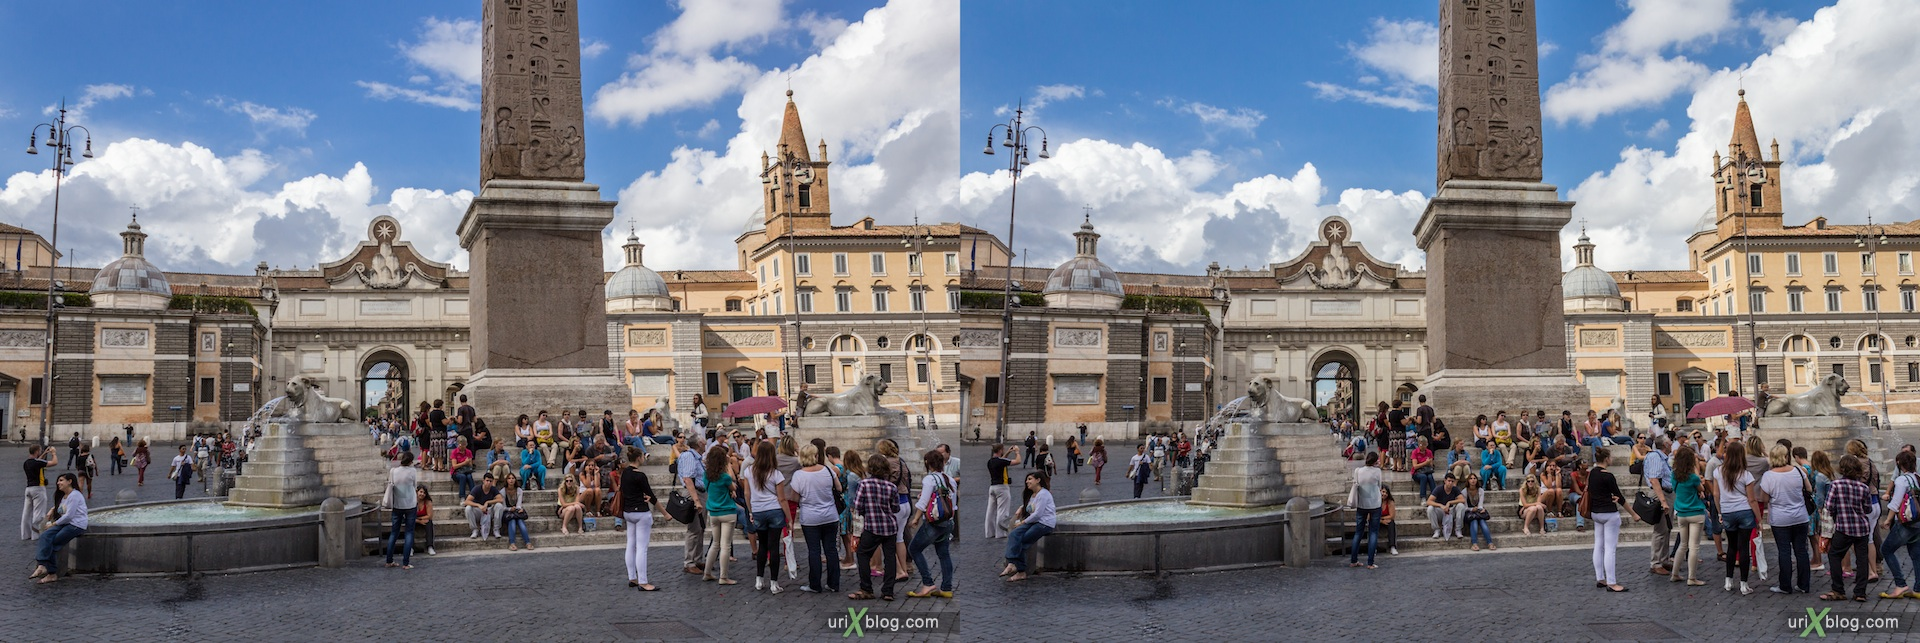 2012, fountain, Flaminio obelisk, Popolo square, Rome, Italy, 3D, stereo pair, cross-eyed, crossview, cross view stereo pair